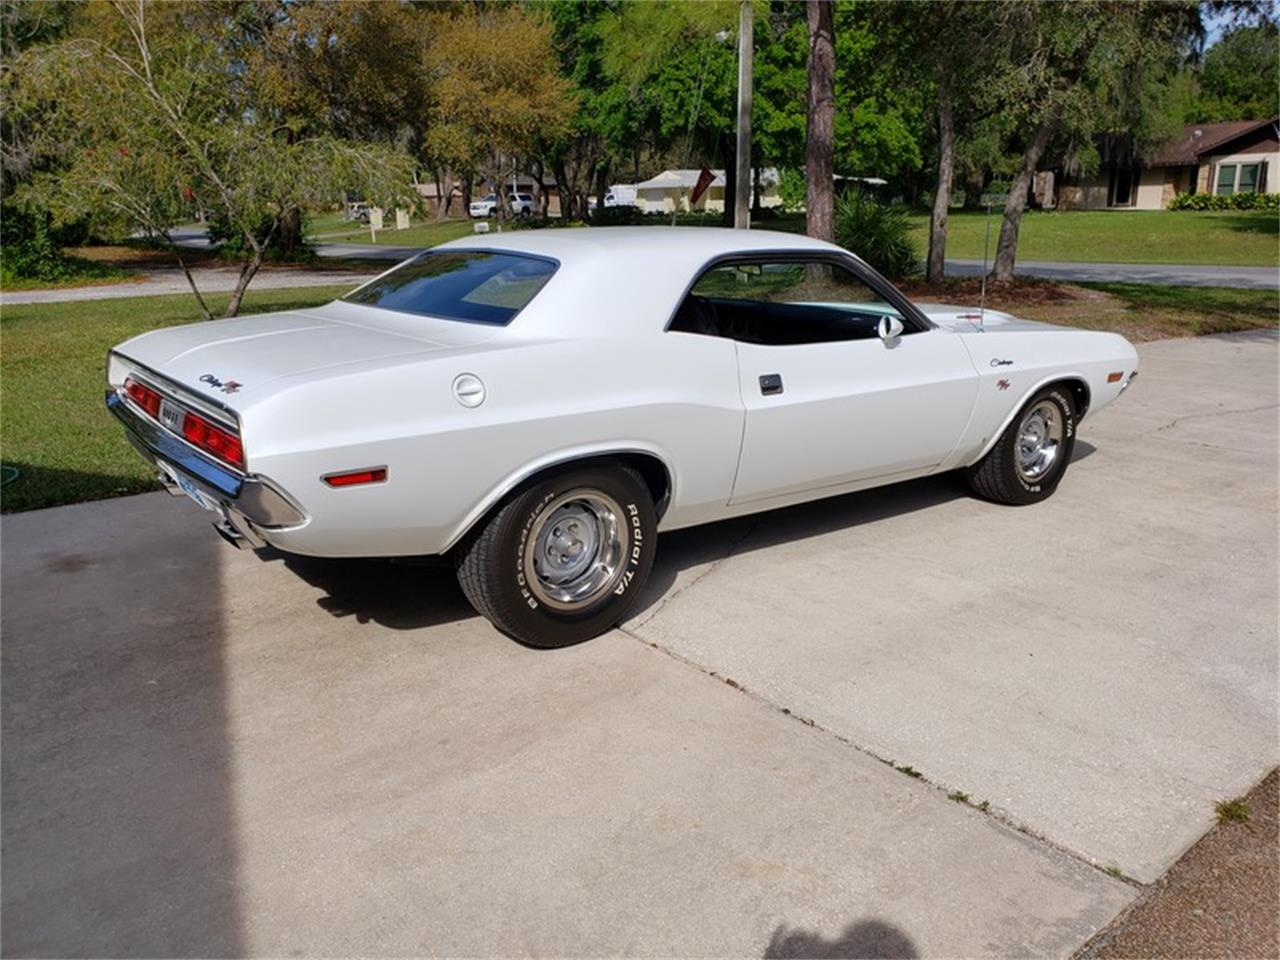 Large Picture of Classic 1970 Challenger R/T located in Florida - $69,500.00 - Q72C